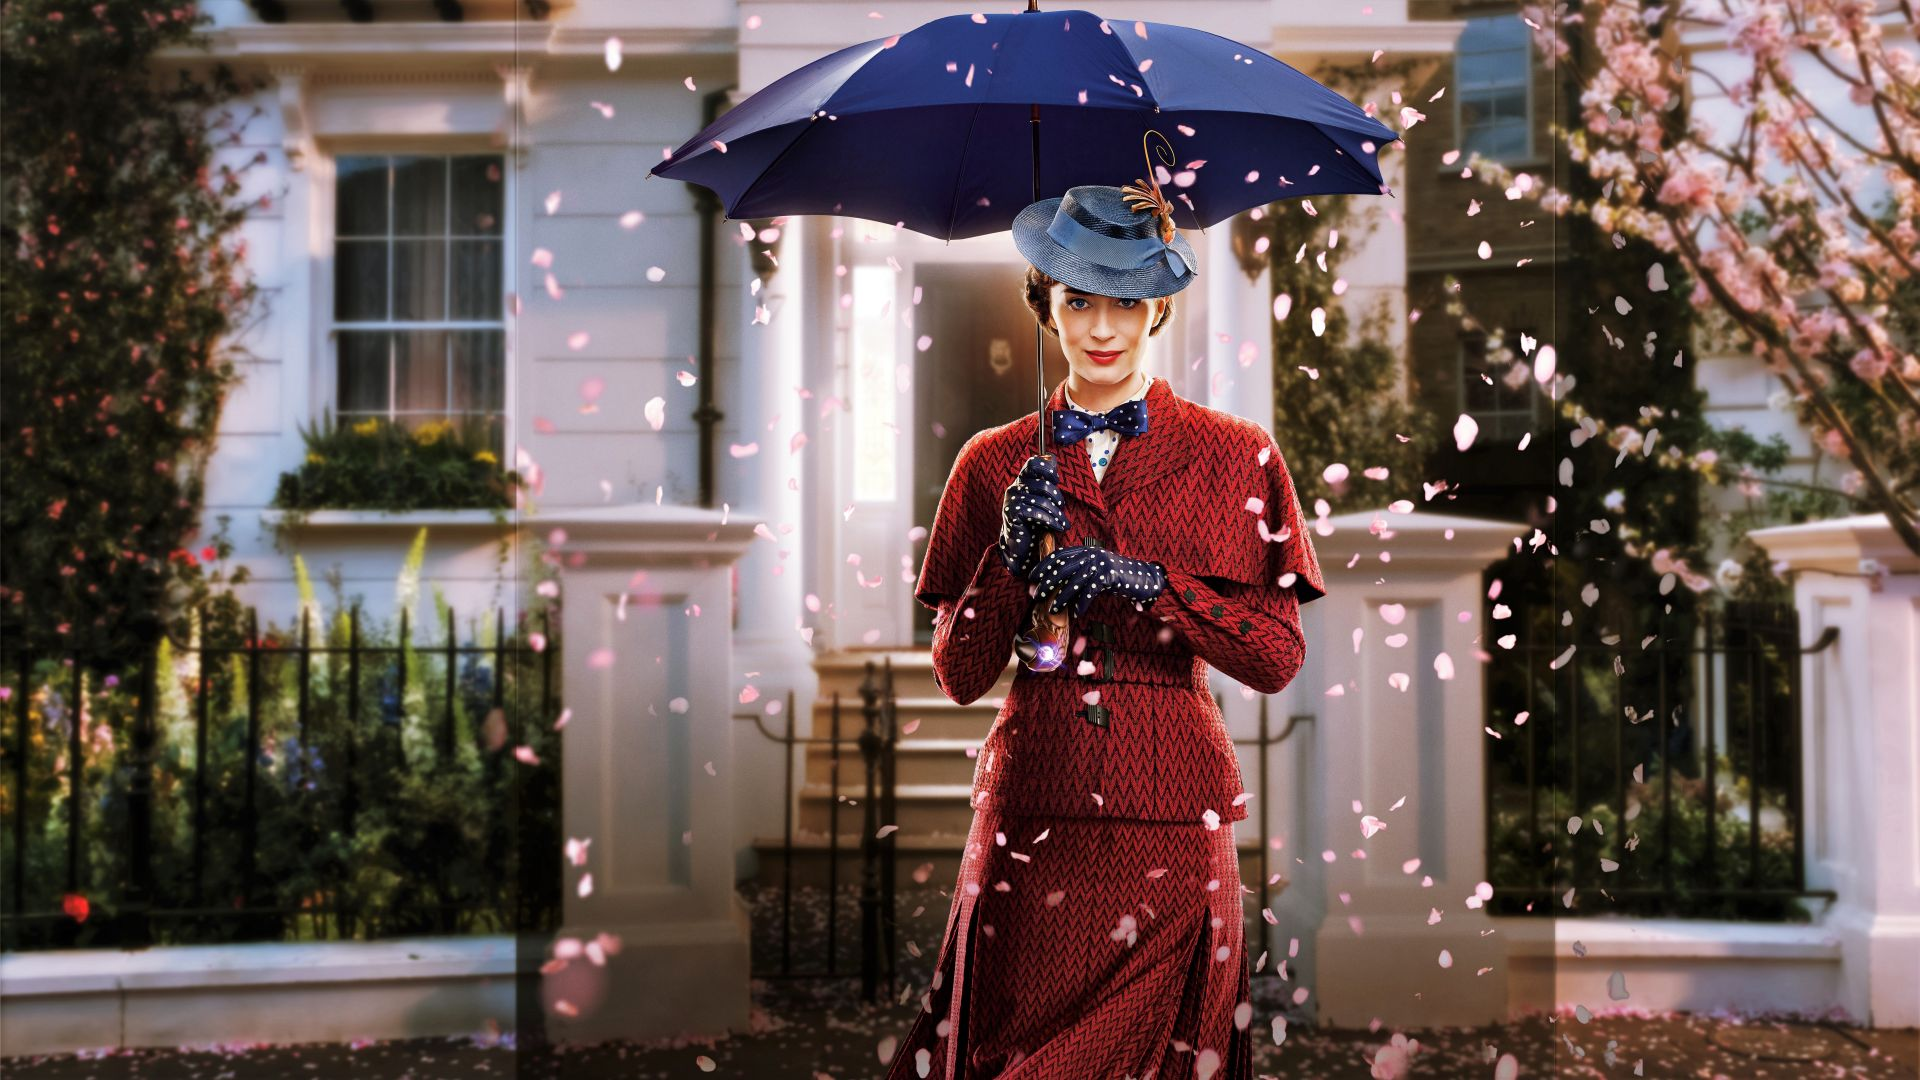 Mary Poppins Returns, Emily Blunt, poster, 8K (horizontal)